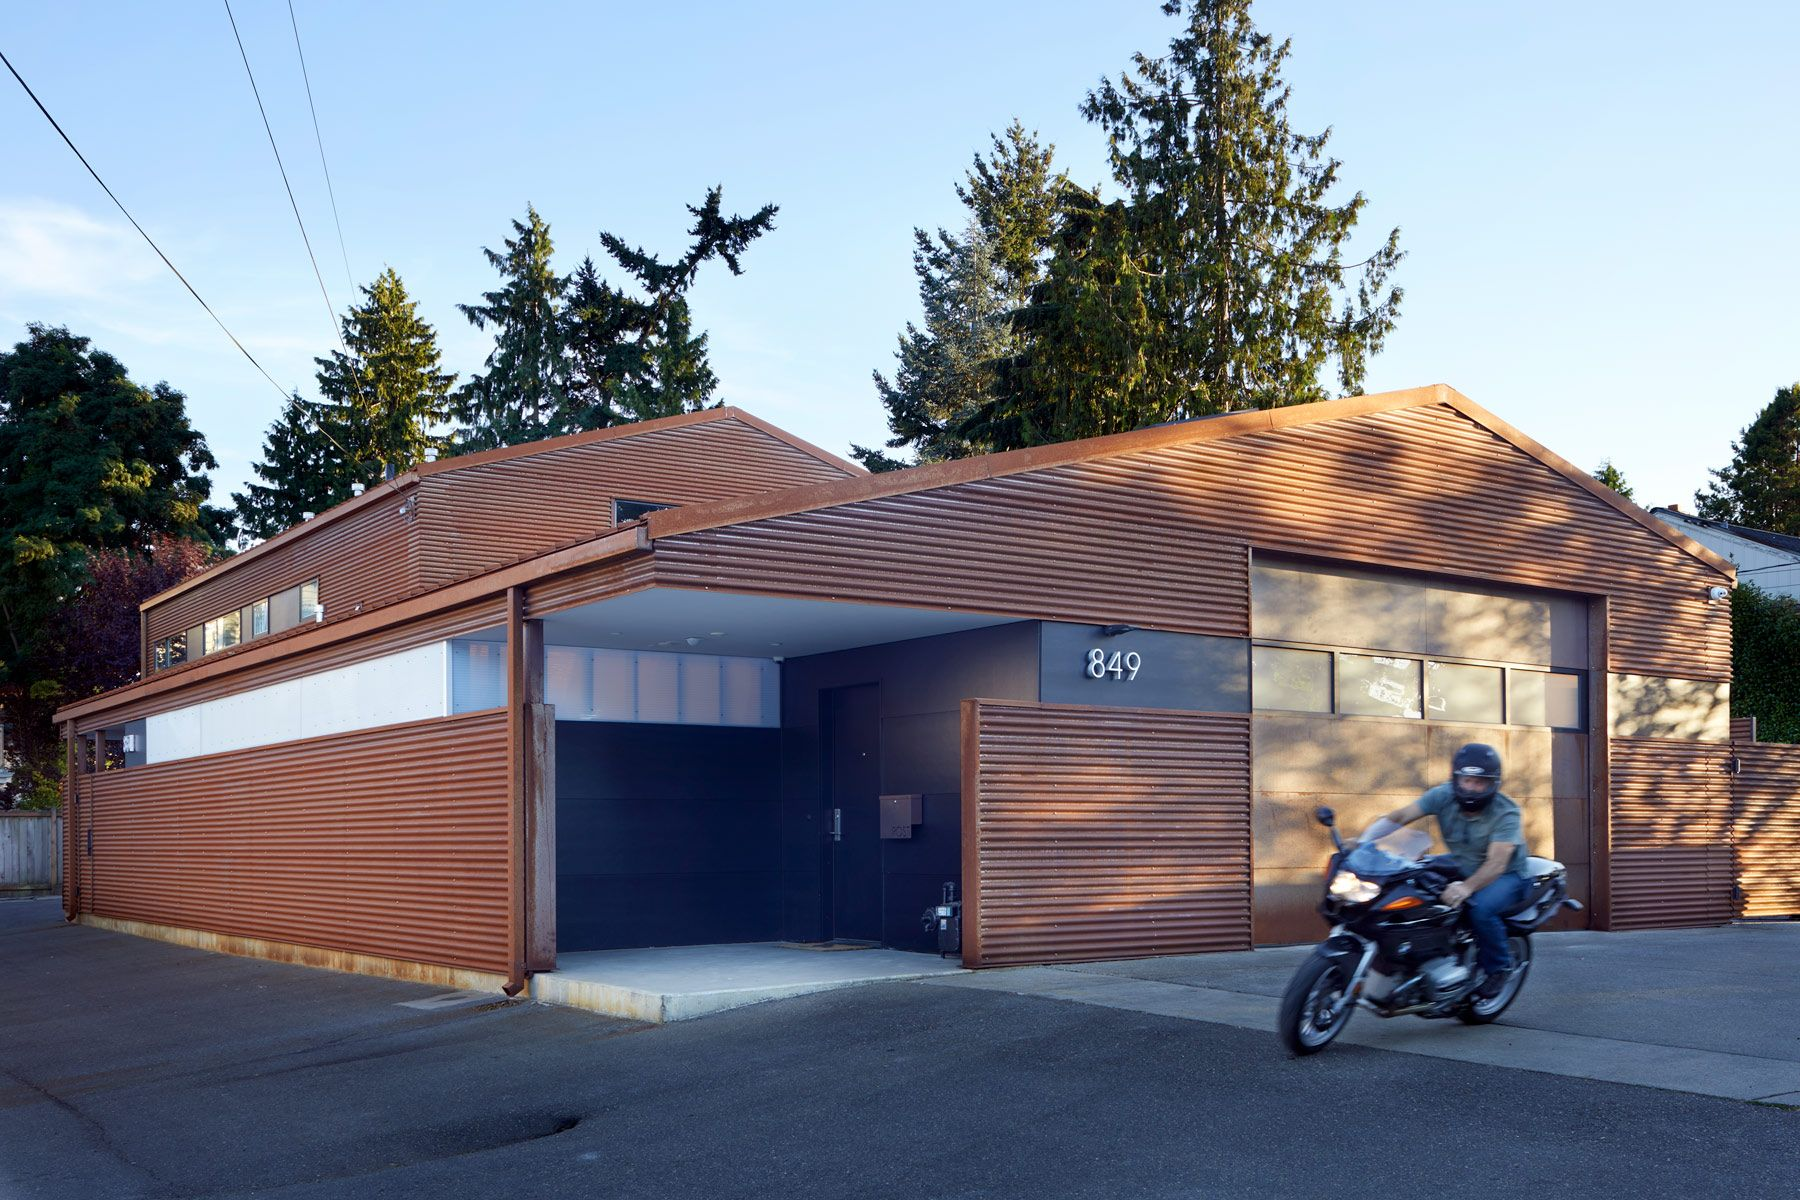 motorcycle, corten, garage, seattle, corten